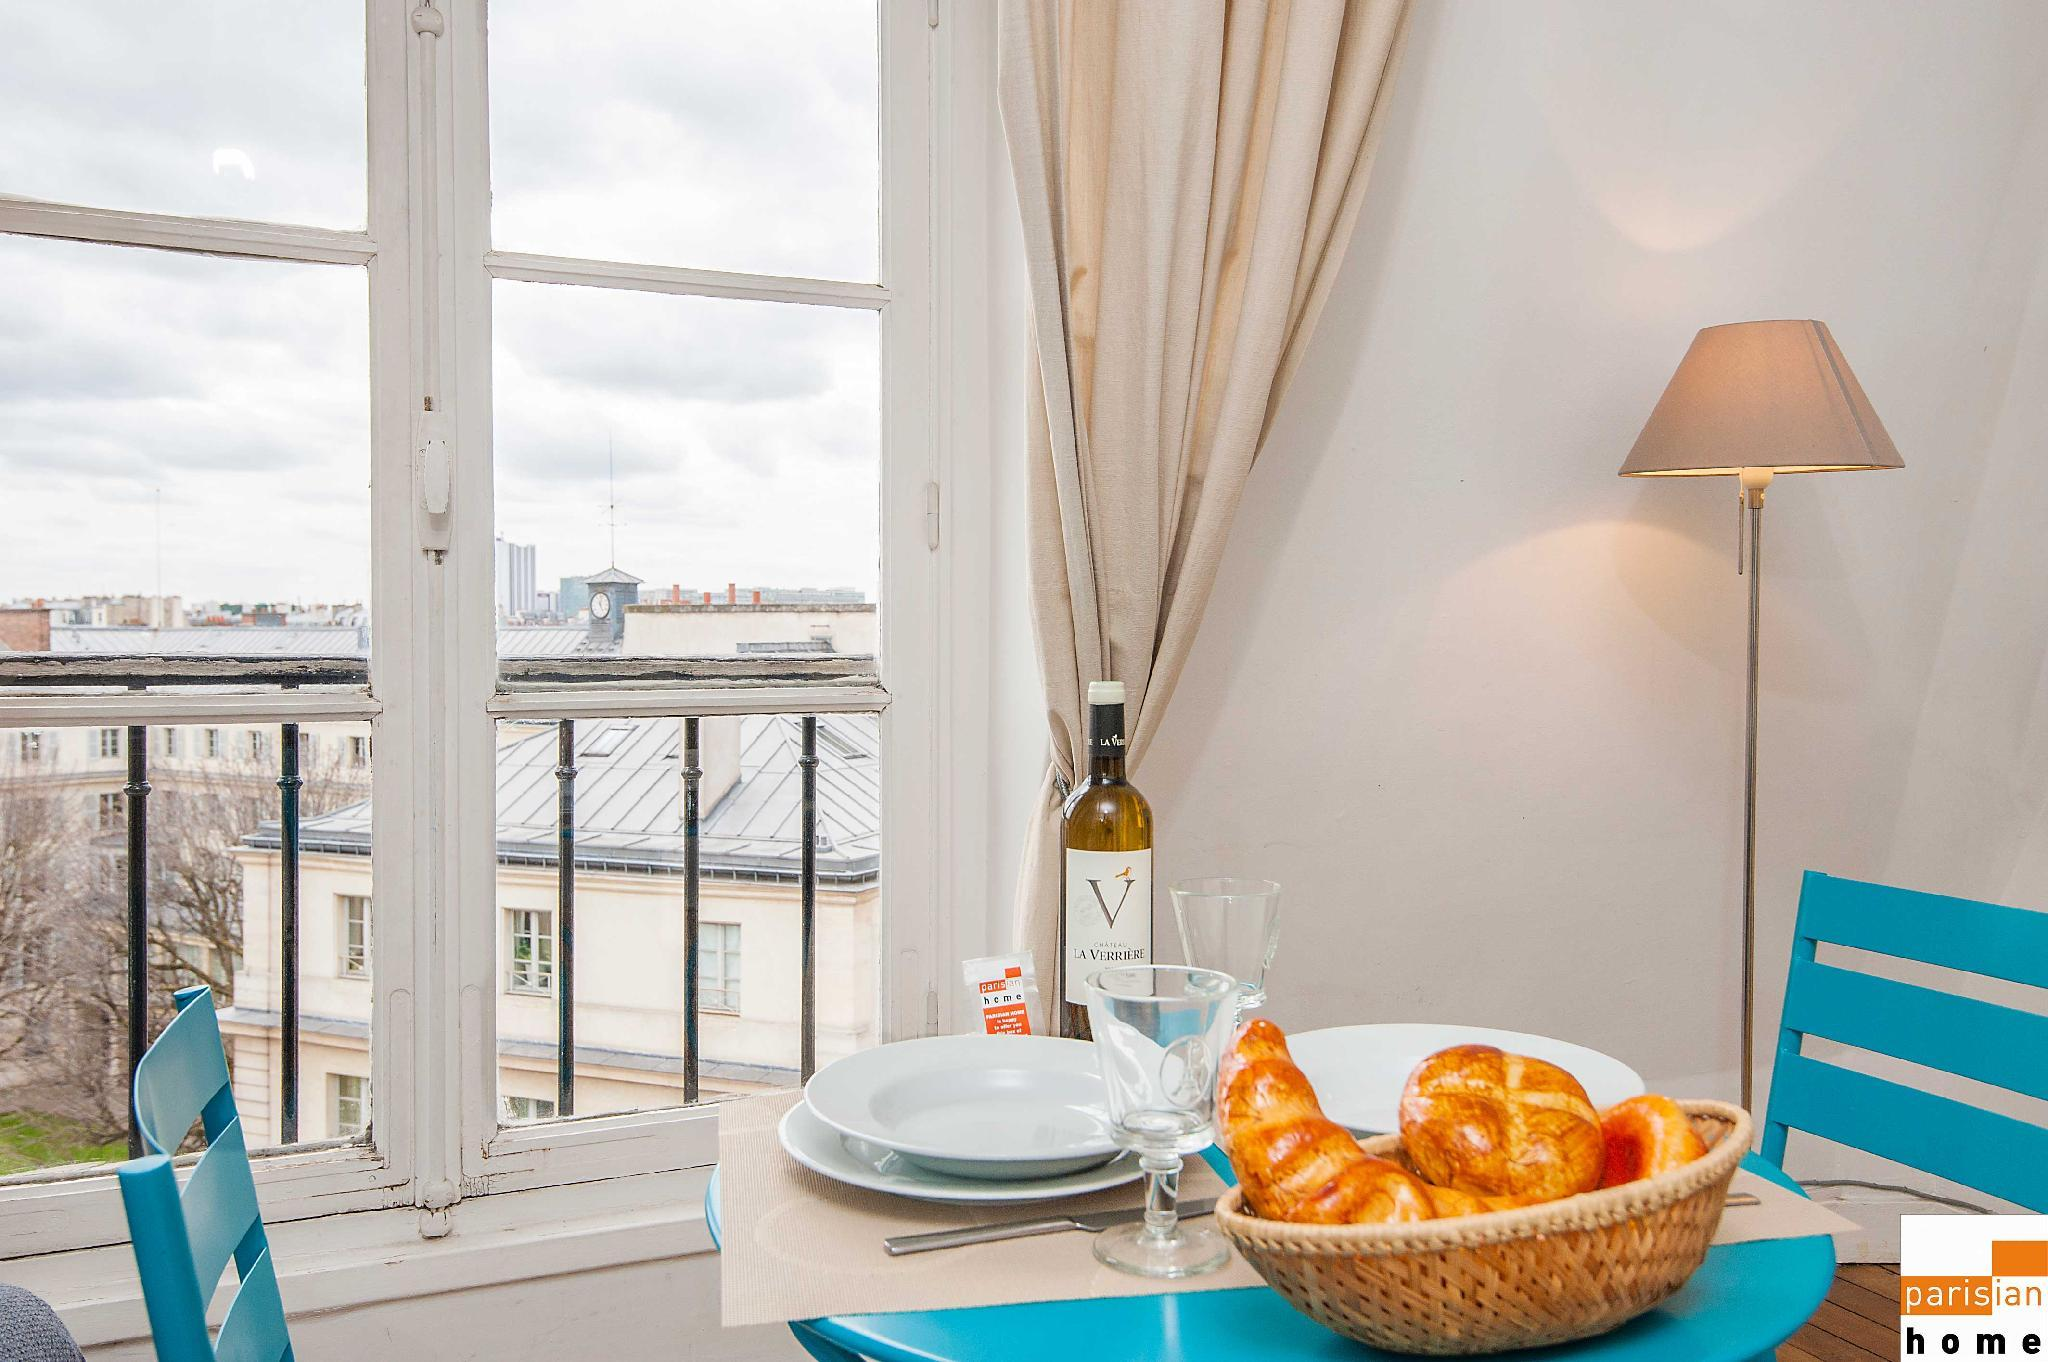 S05006 - Charming studio for 2 people in the Latin Quarter